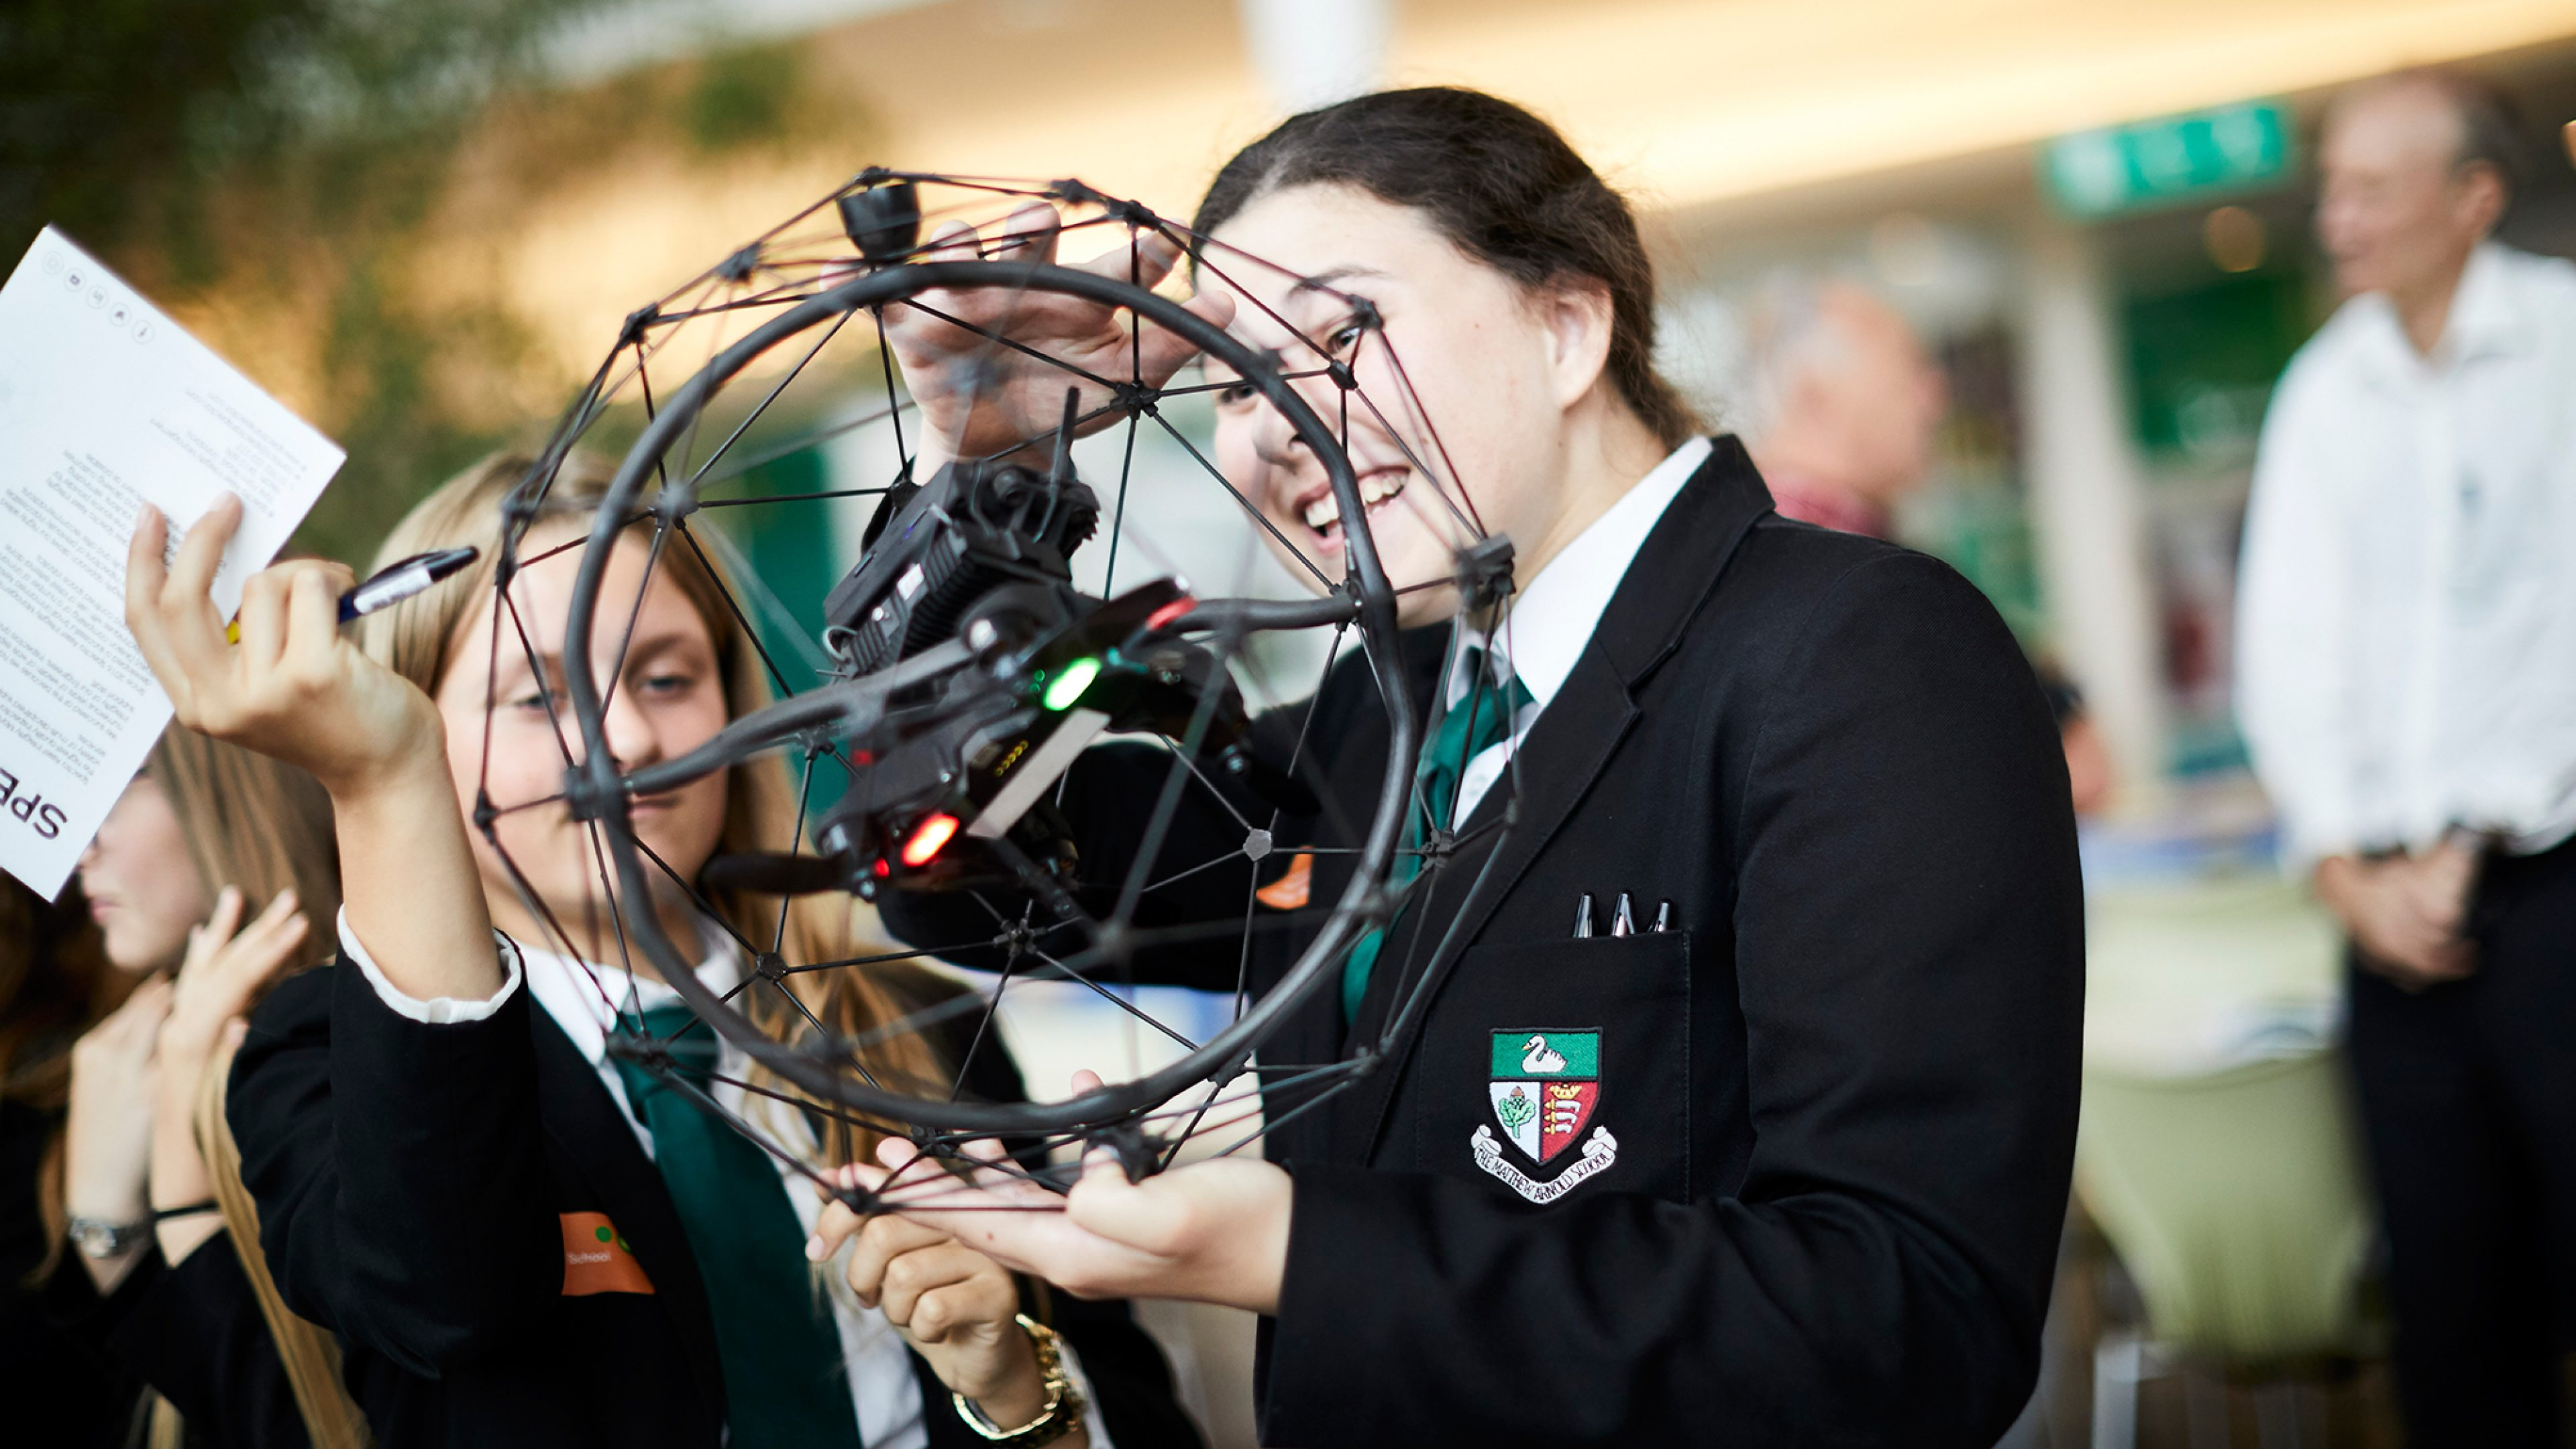 Two secondary school girls look at an engineering model